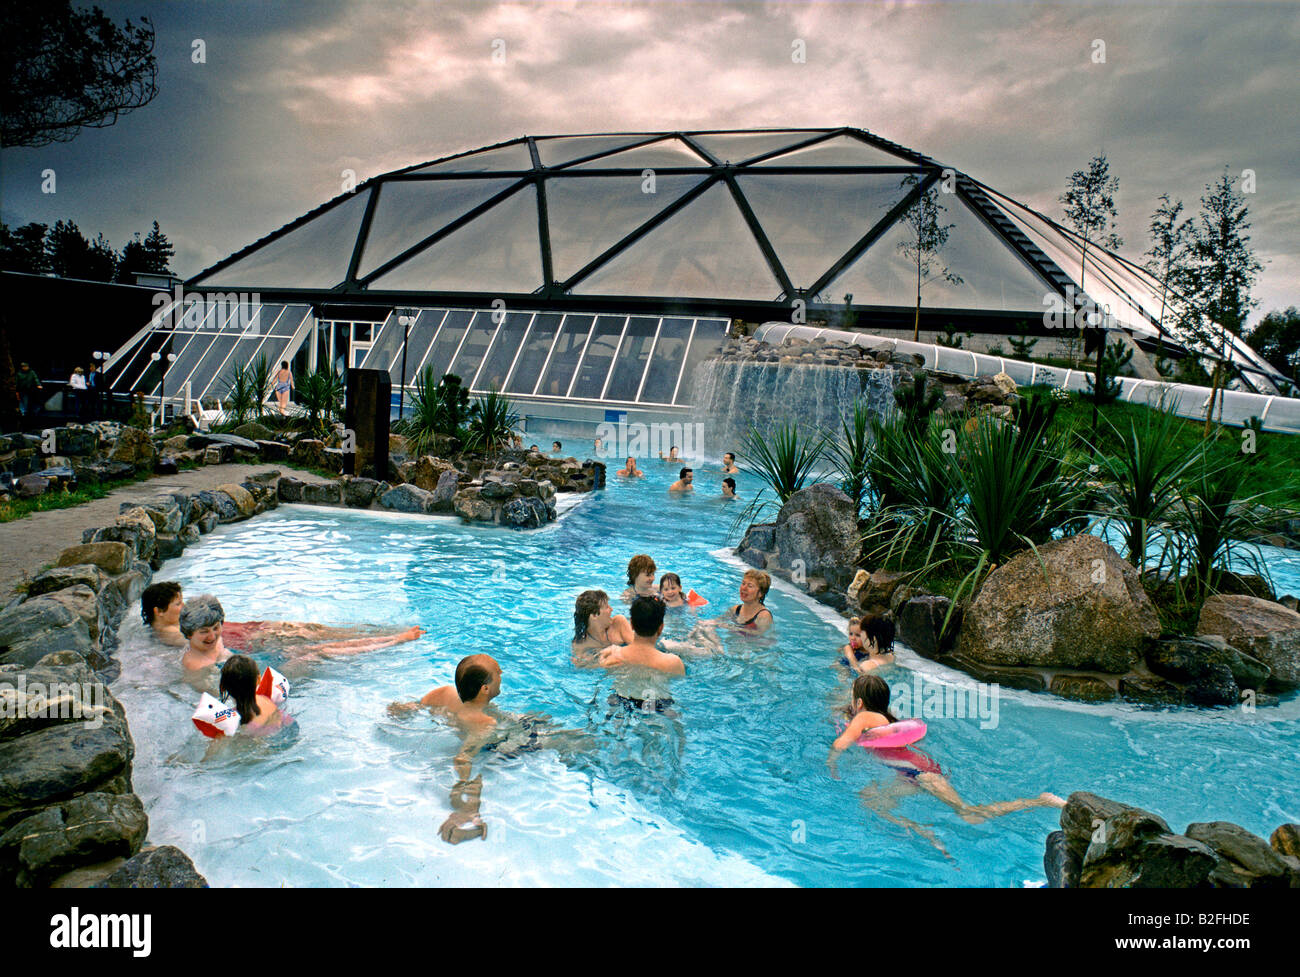 Holidaymakers Swimming Outside Transparent Holiday Glass Dome In Stock Photo Royalty Free Image